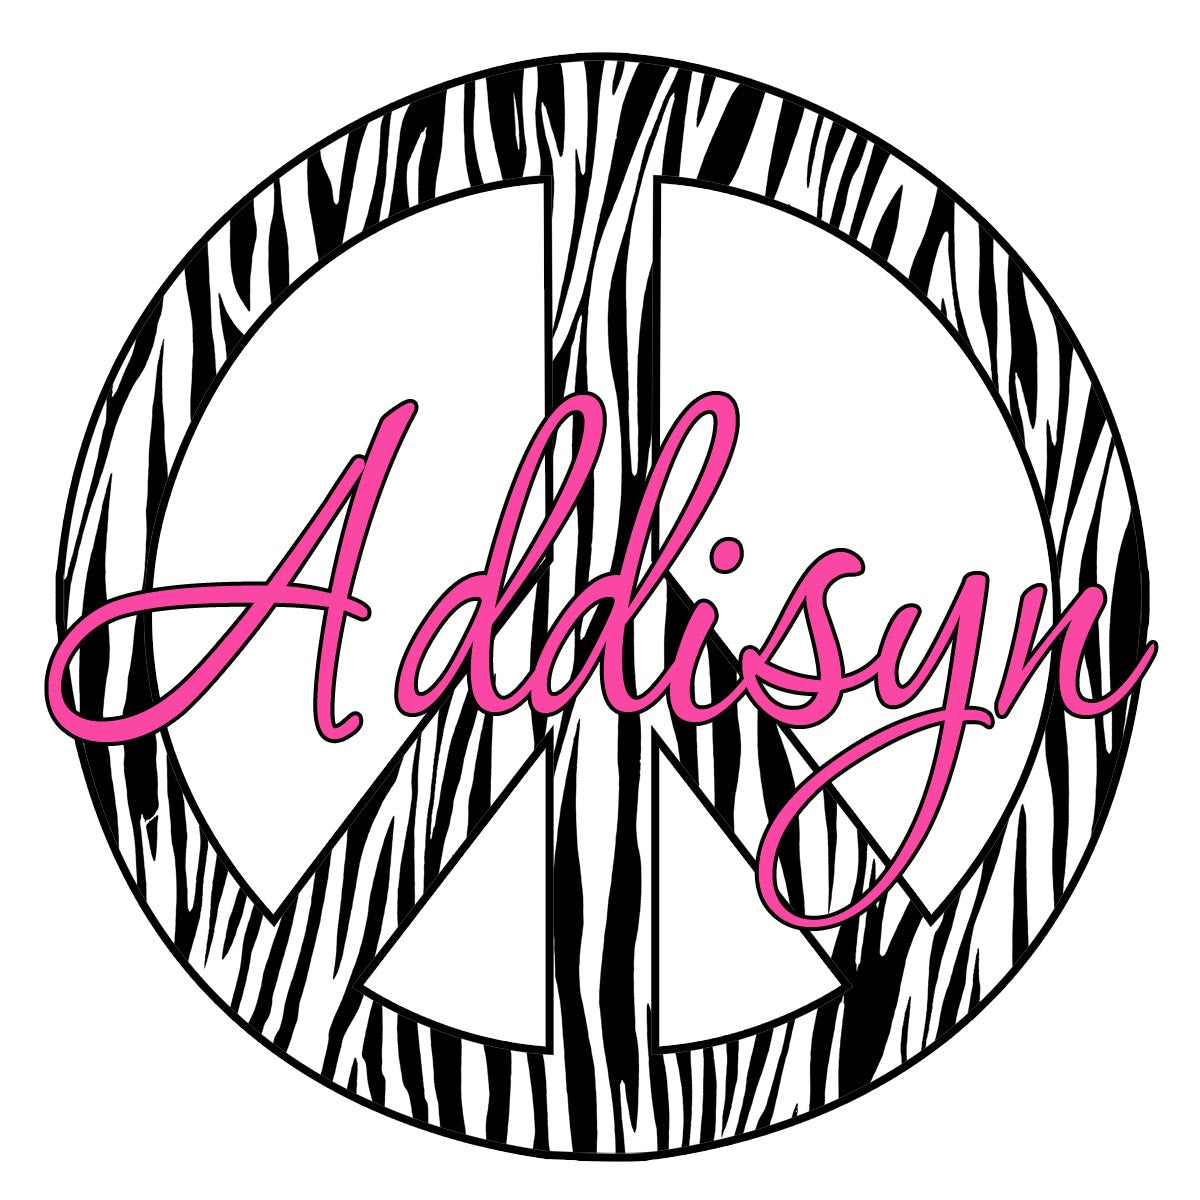 VWAQ Custom Name Zebra Print Peace Sign Wall Decal - PC10 - VWAQ Vinyl Wall Art Quotes and Prints